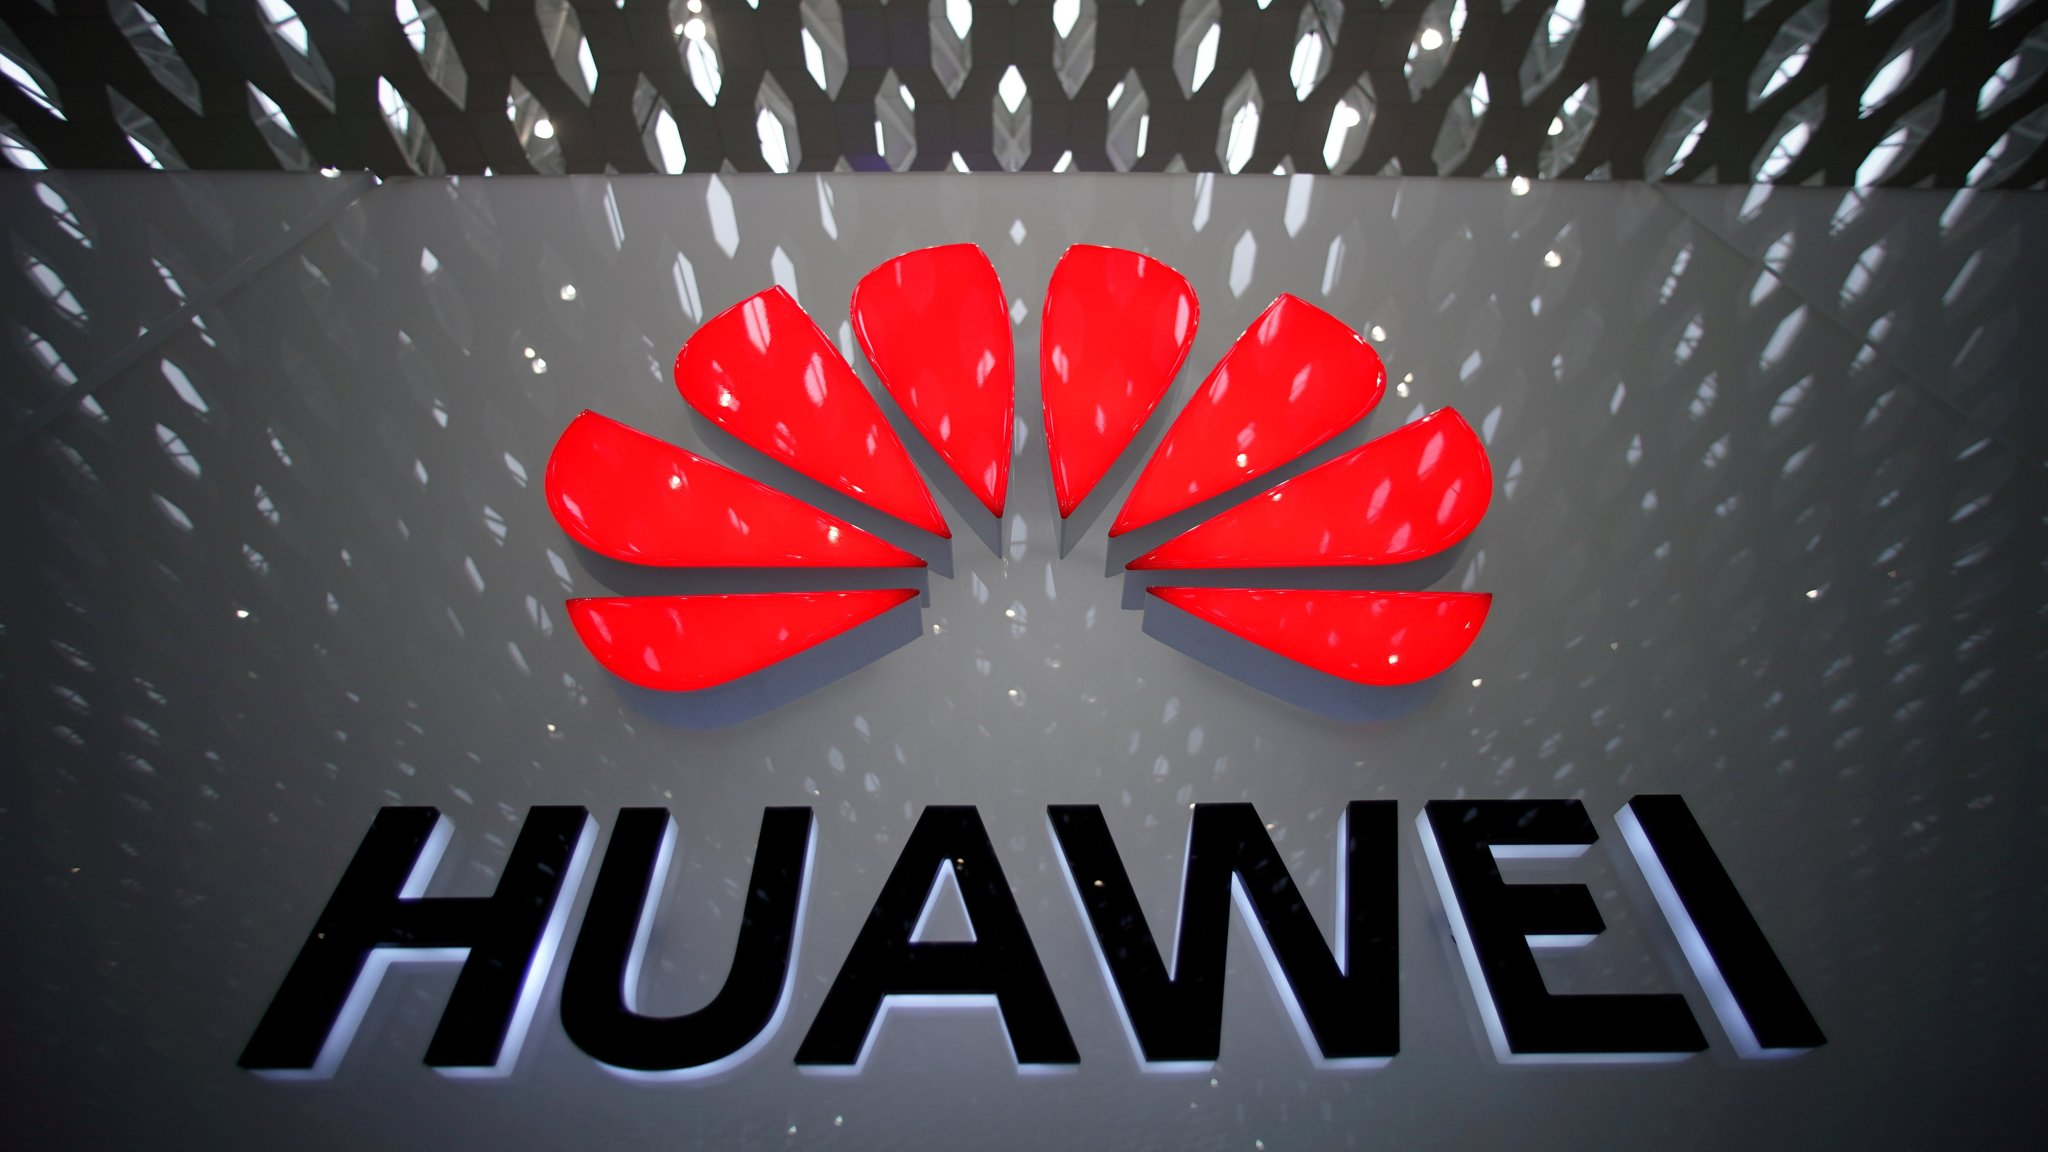 US agencies barred from buying Huawei equipment | Financial